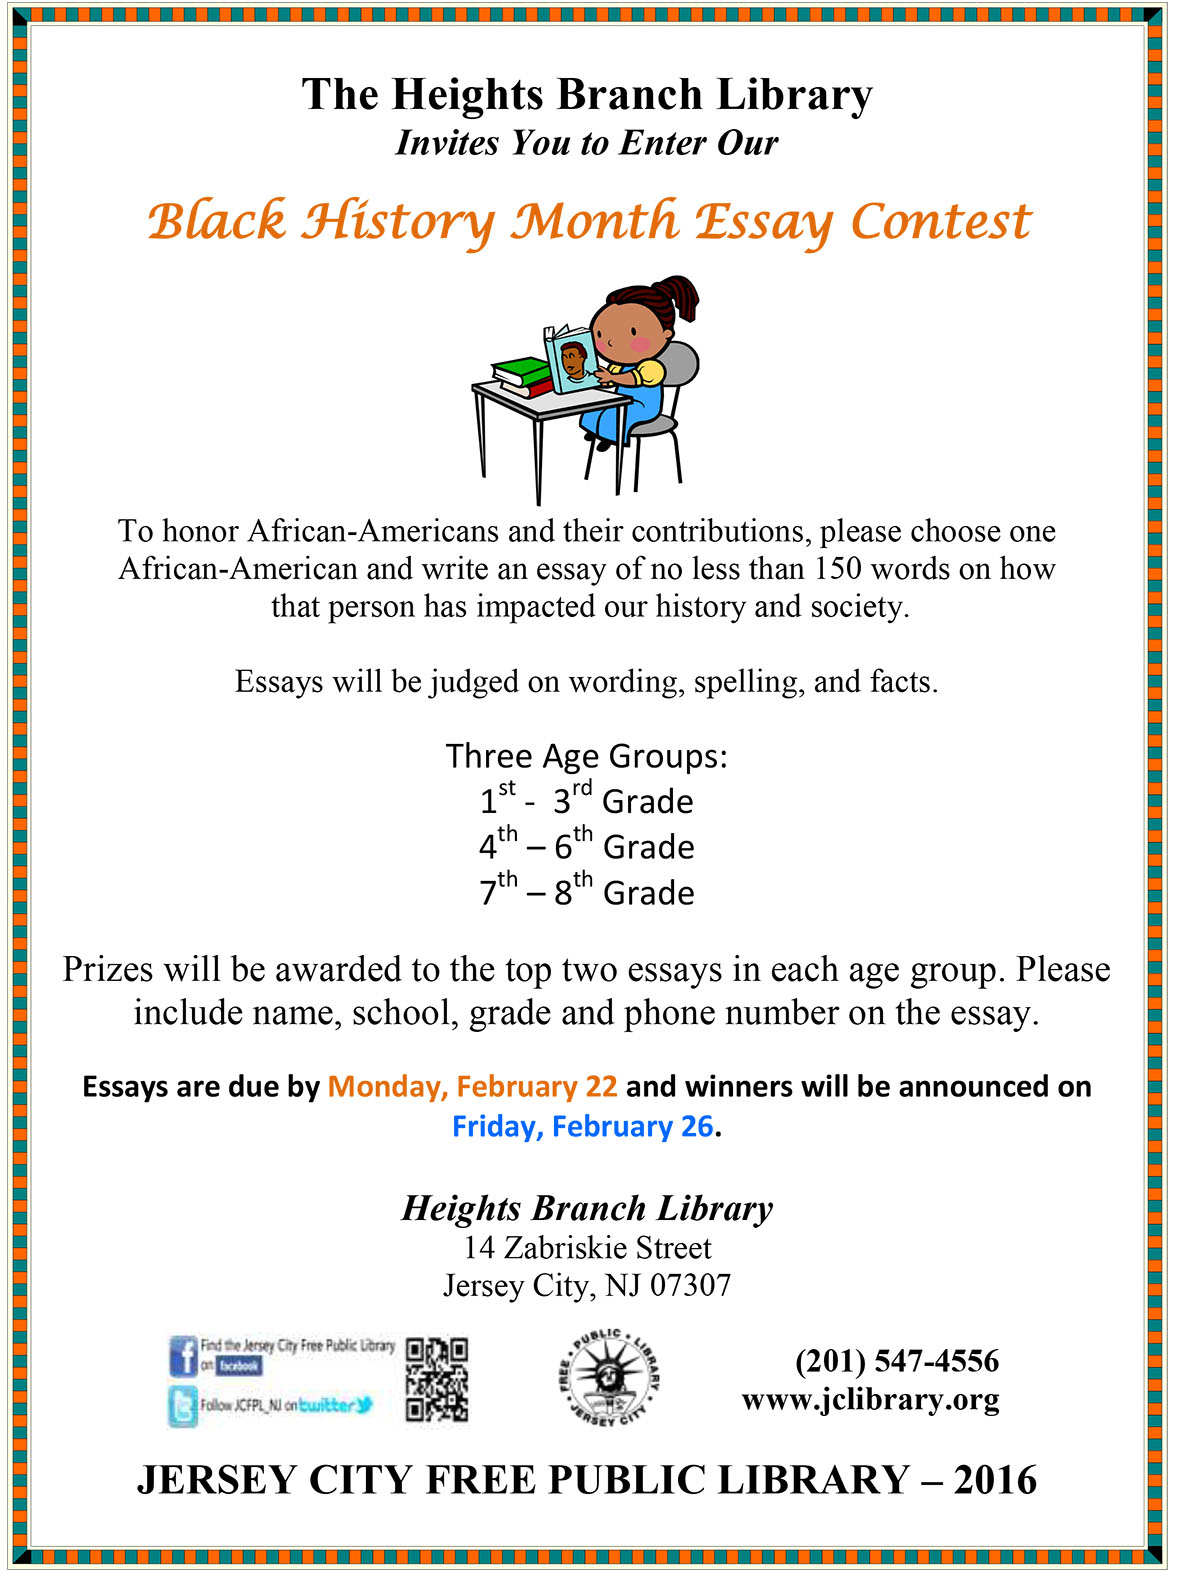 Meth Essay Black History Month Essay Contest The Office Of Cultural Affairs Event  Navigation Essay About Death Penalty also How To Write Essay For Scholarship Cultural Essays Black History Month Essay Contest The Office Of  Essay On The Declaration Of Independence